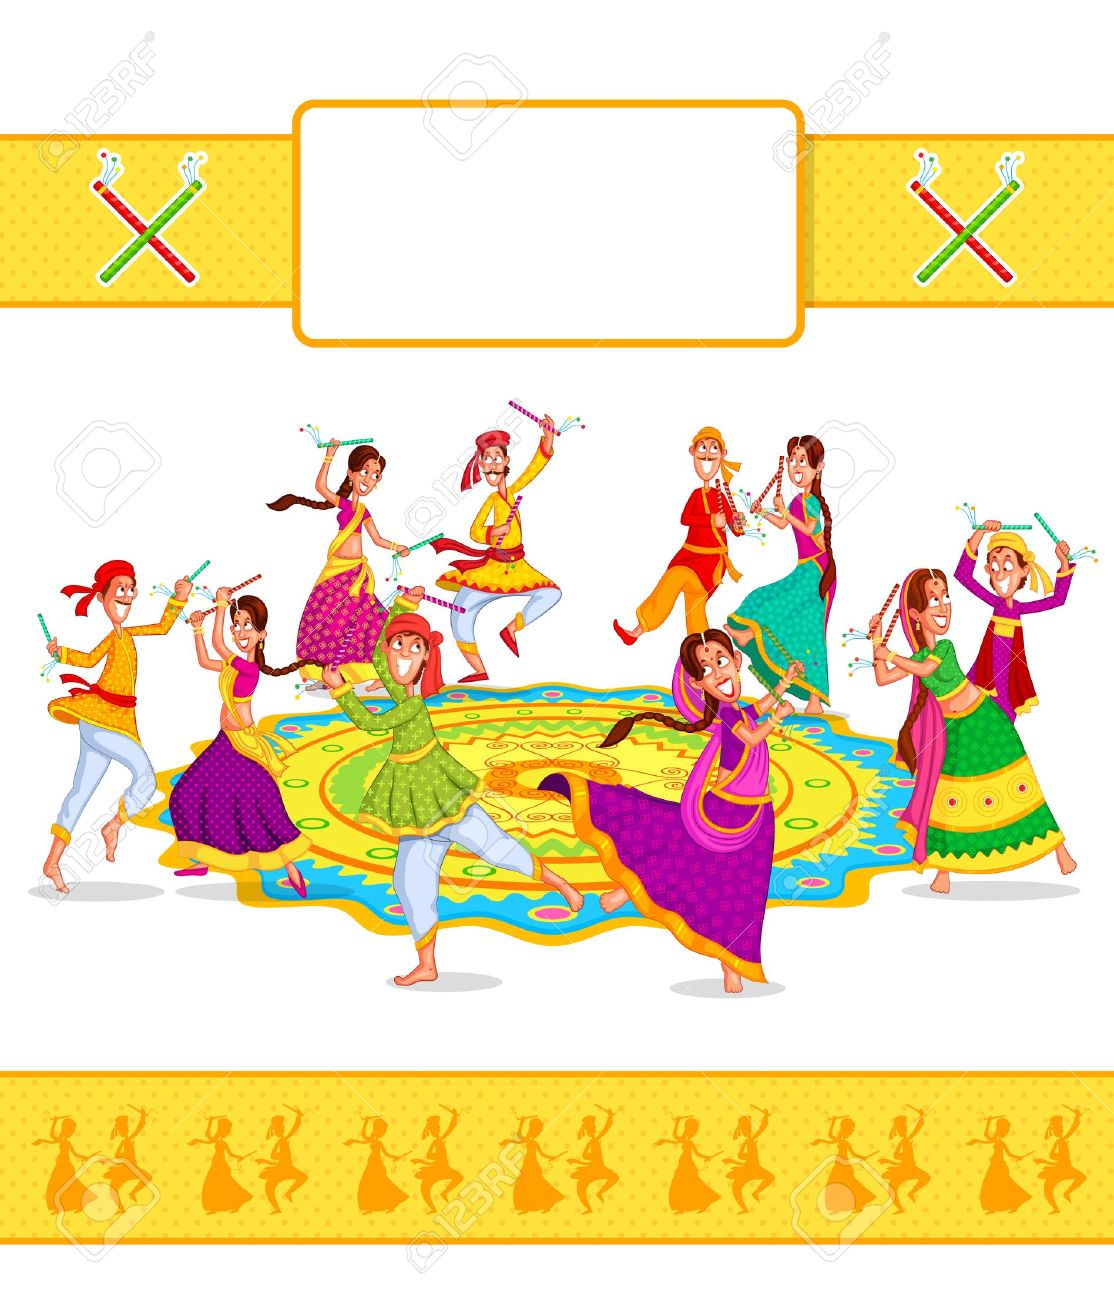 59 Raas Cliparts, Stock Vector And Royalty Free Raas Illustrations.